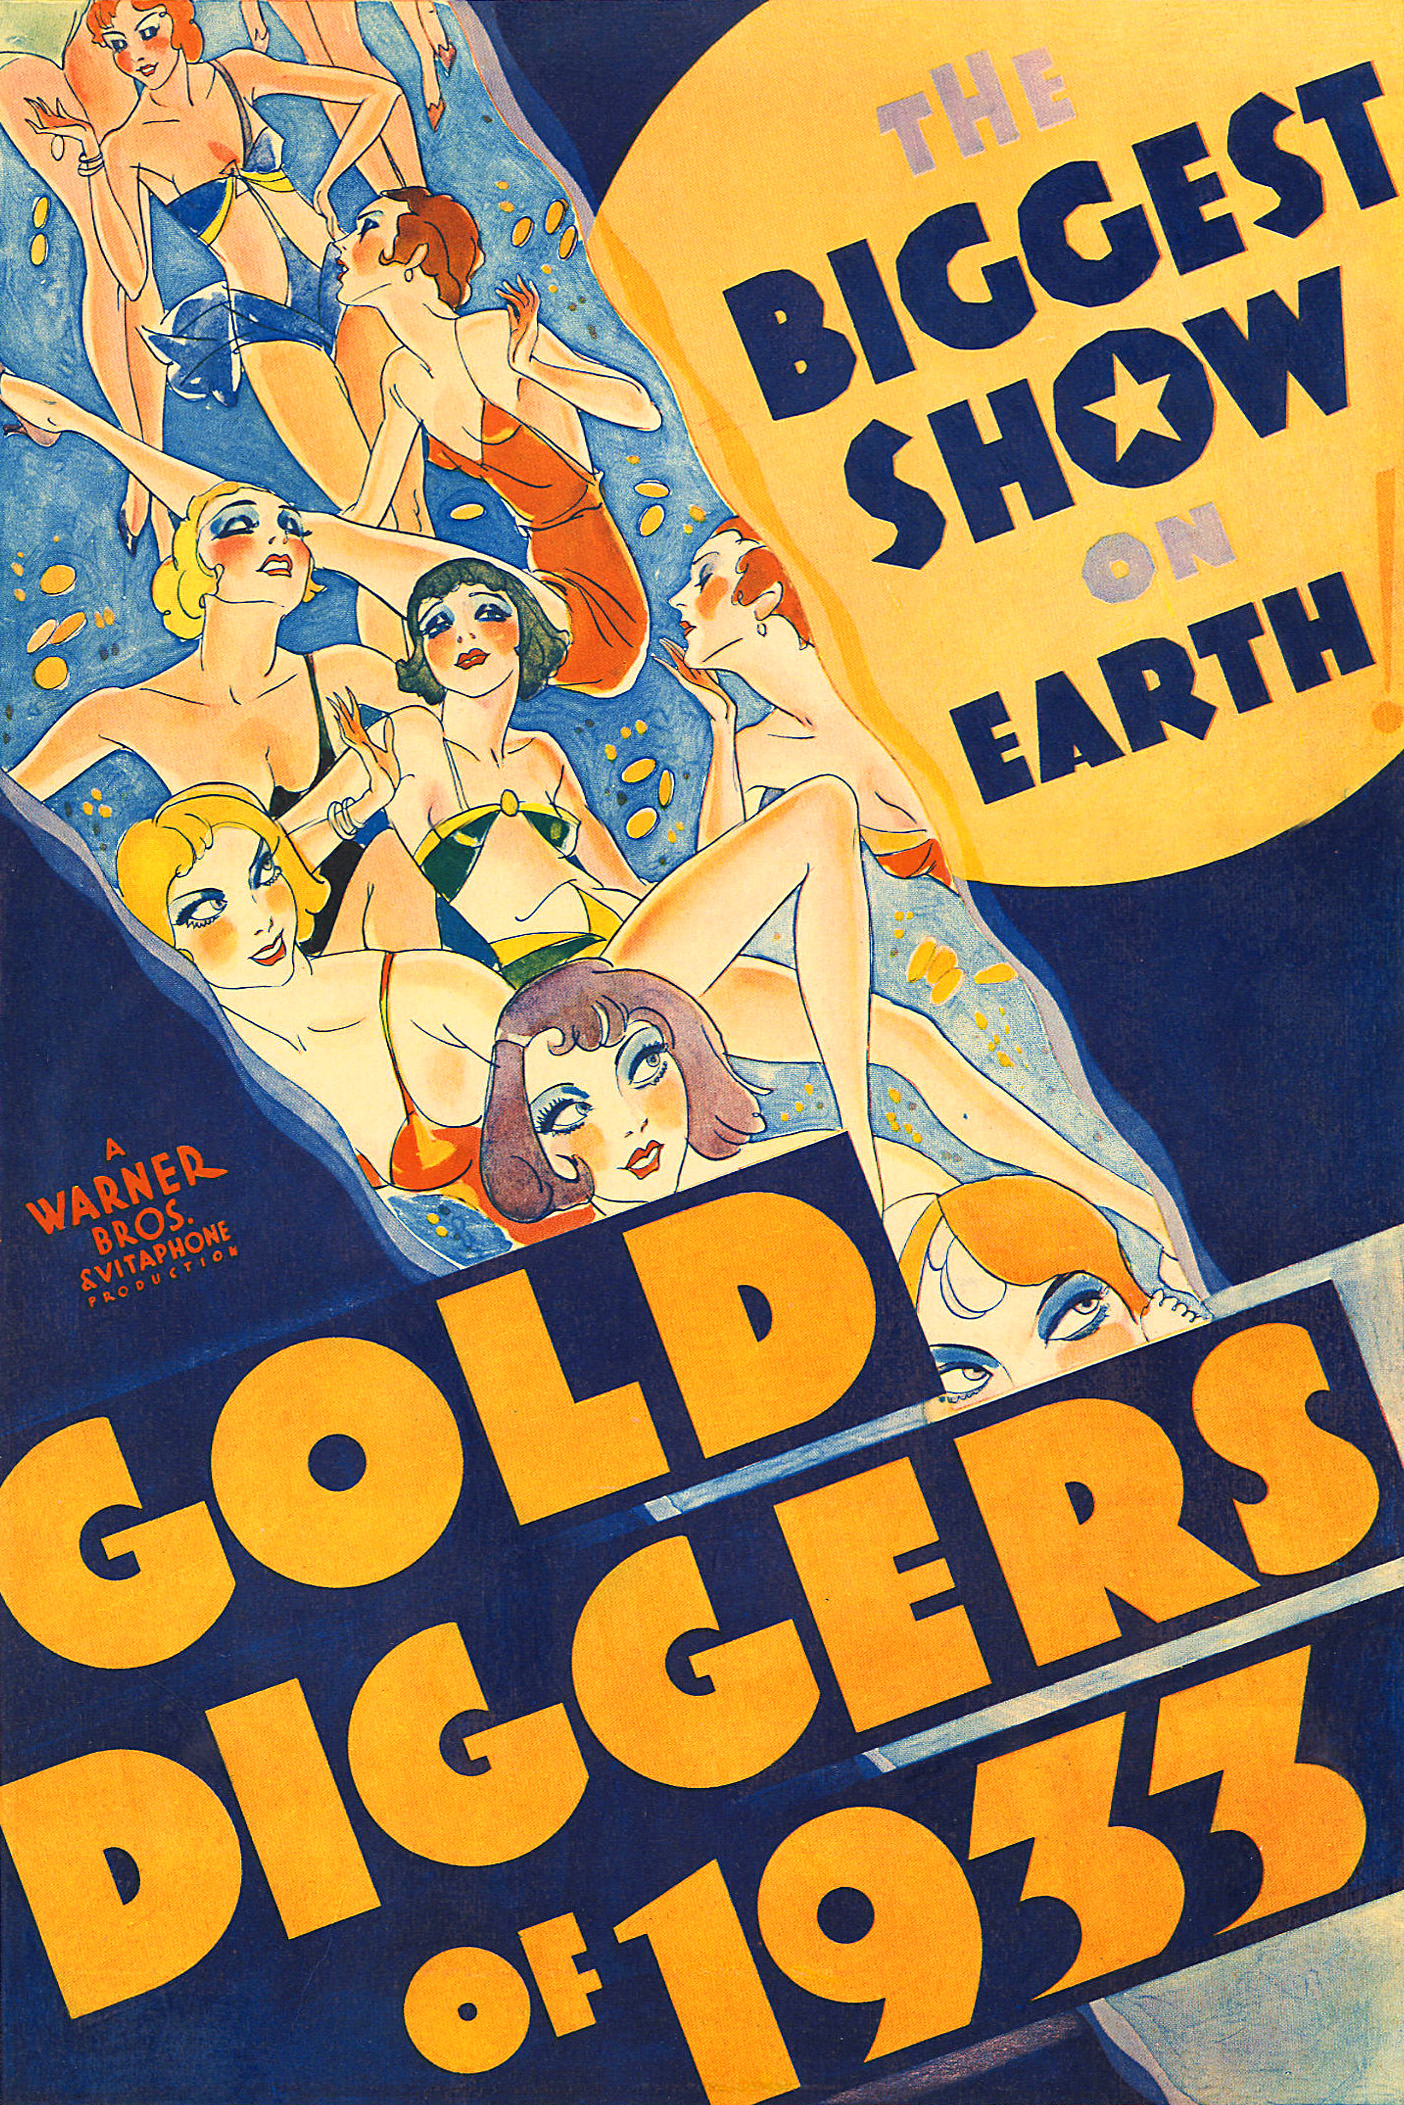 [Image: Gold_Diggers_of_1933_%28window_card_-_cropped%29.jpg]